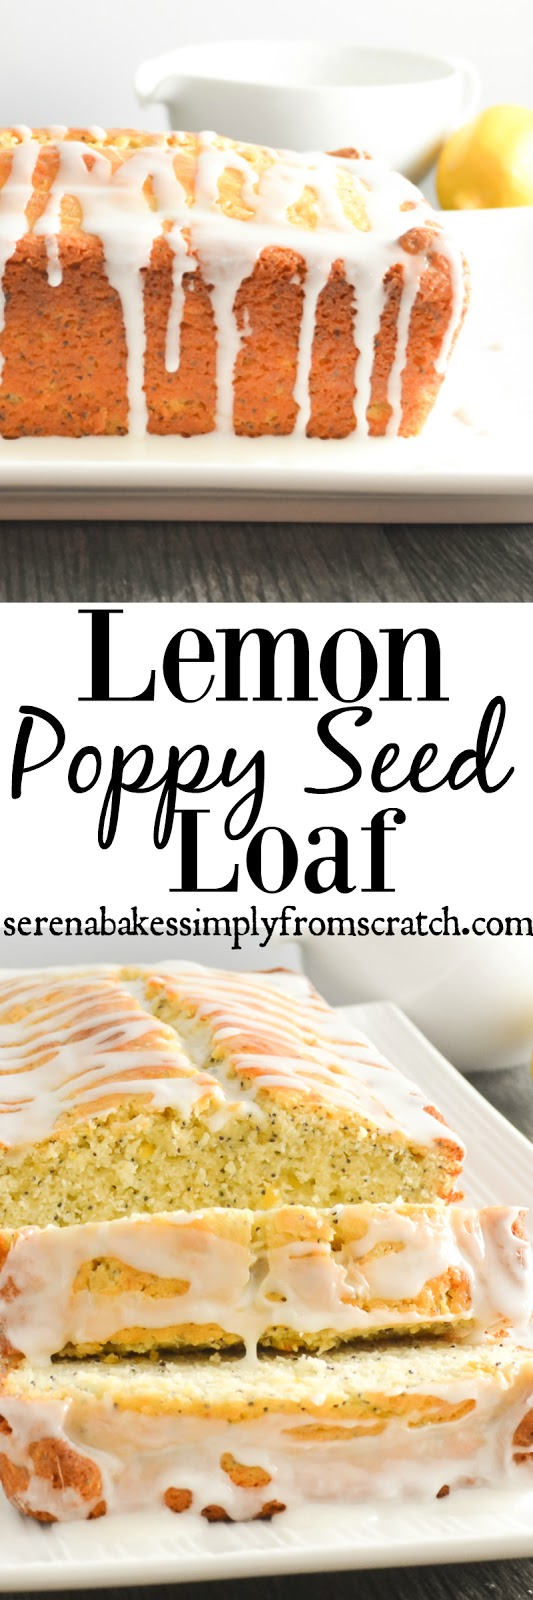 Lemon Poppy Seed Loaf has a divine crumb with plenty of lemon flavor! Perfect for breakfast, brunch, dessert, Easter, or Mothers Day! serenabakessimplyfromscratch.com